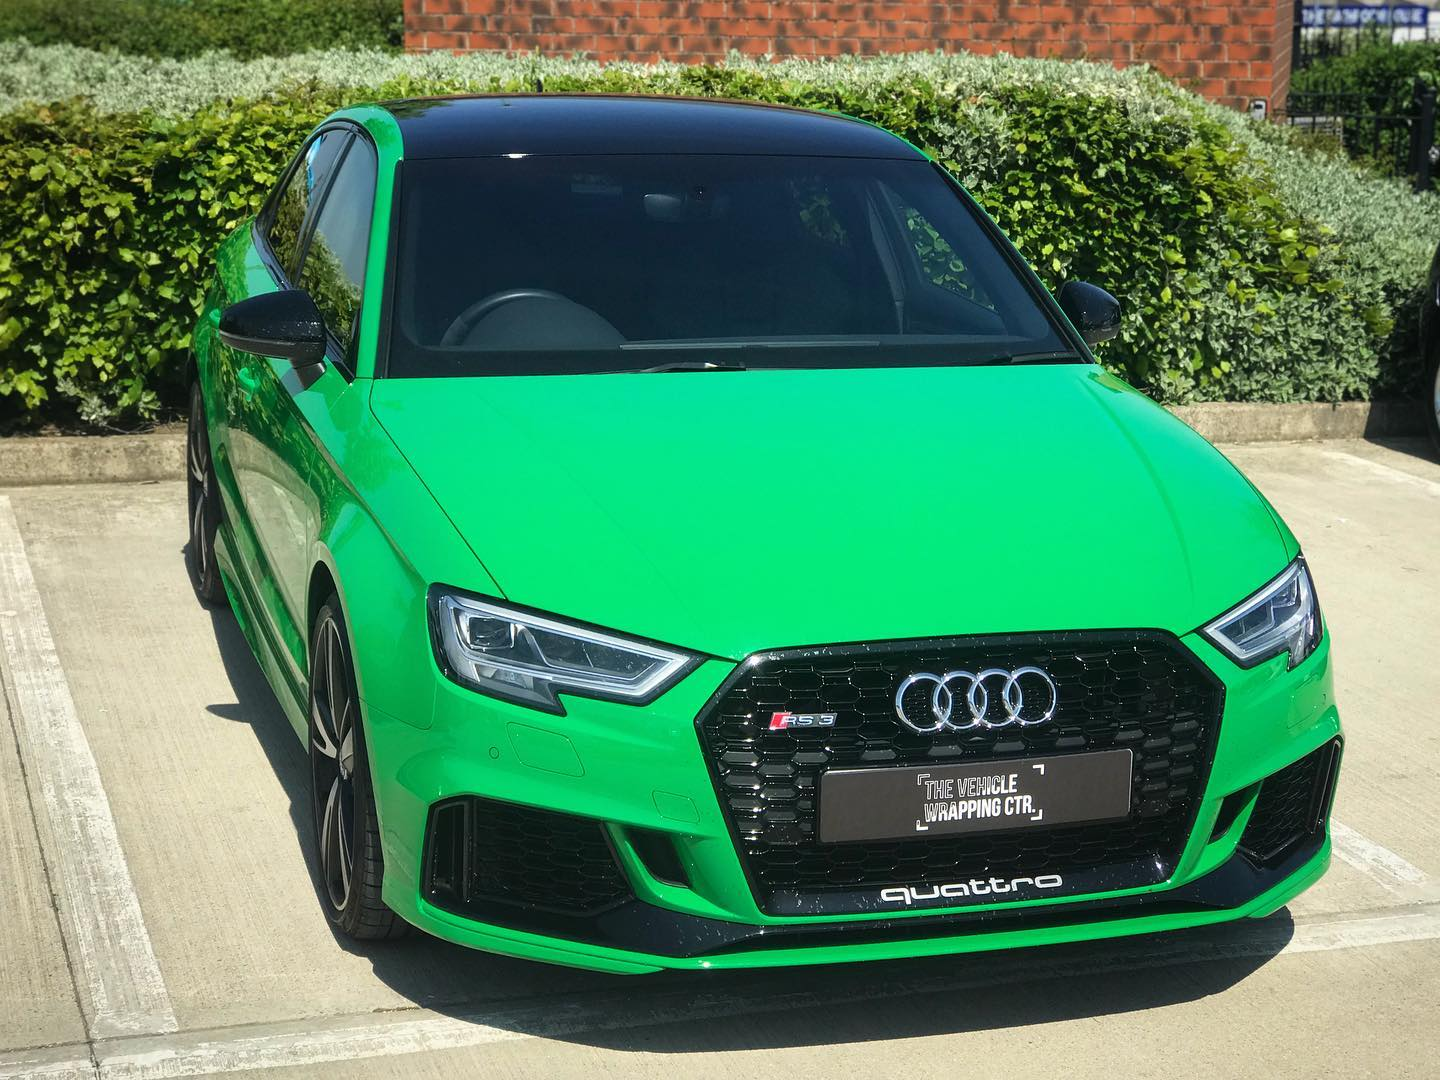 Audi Rs3 Roof Wrap In Gloss Black Personal Vehicle Wrap Project